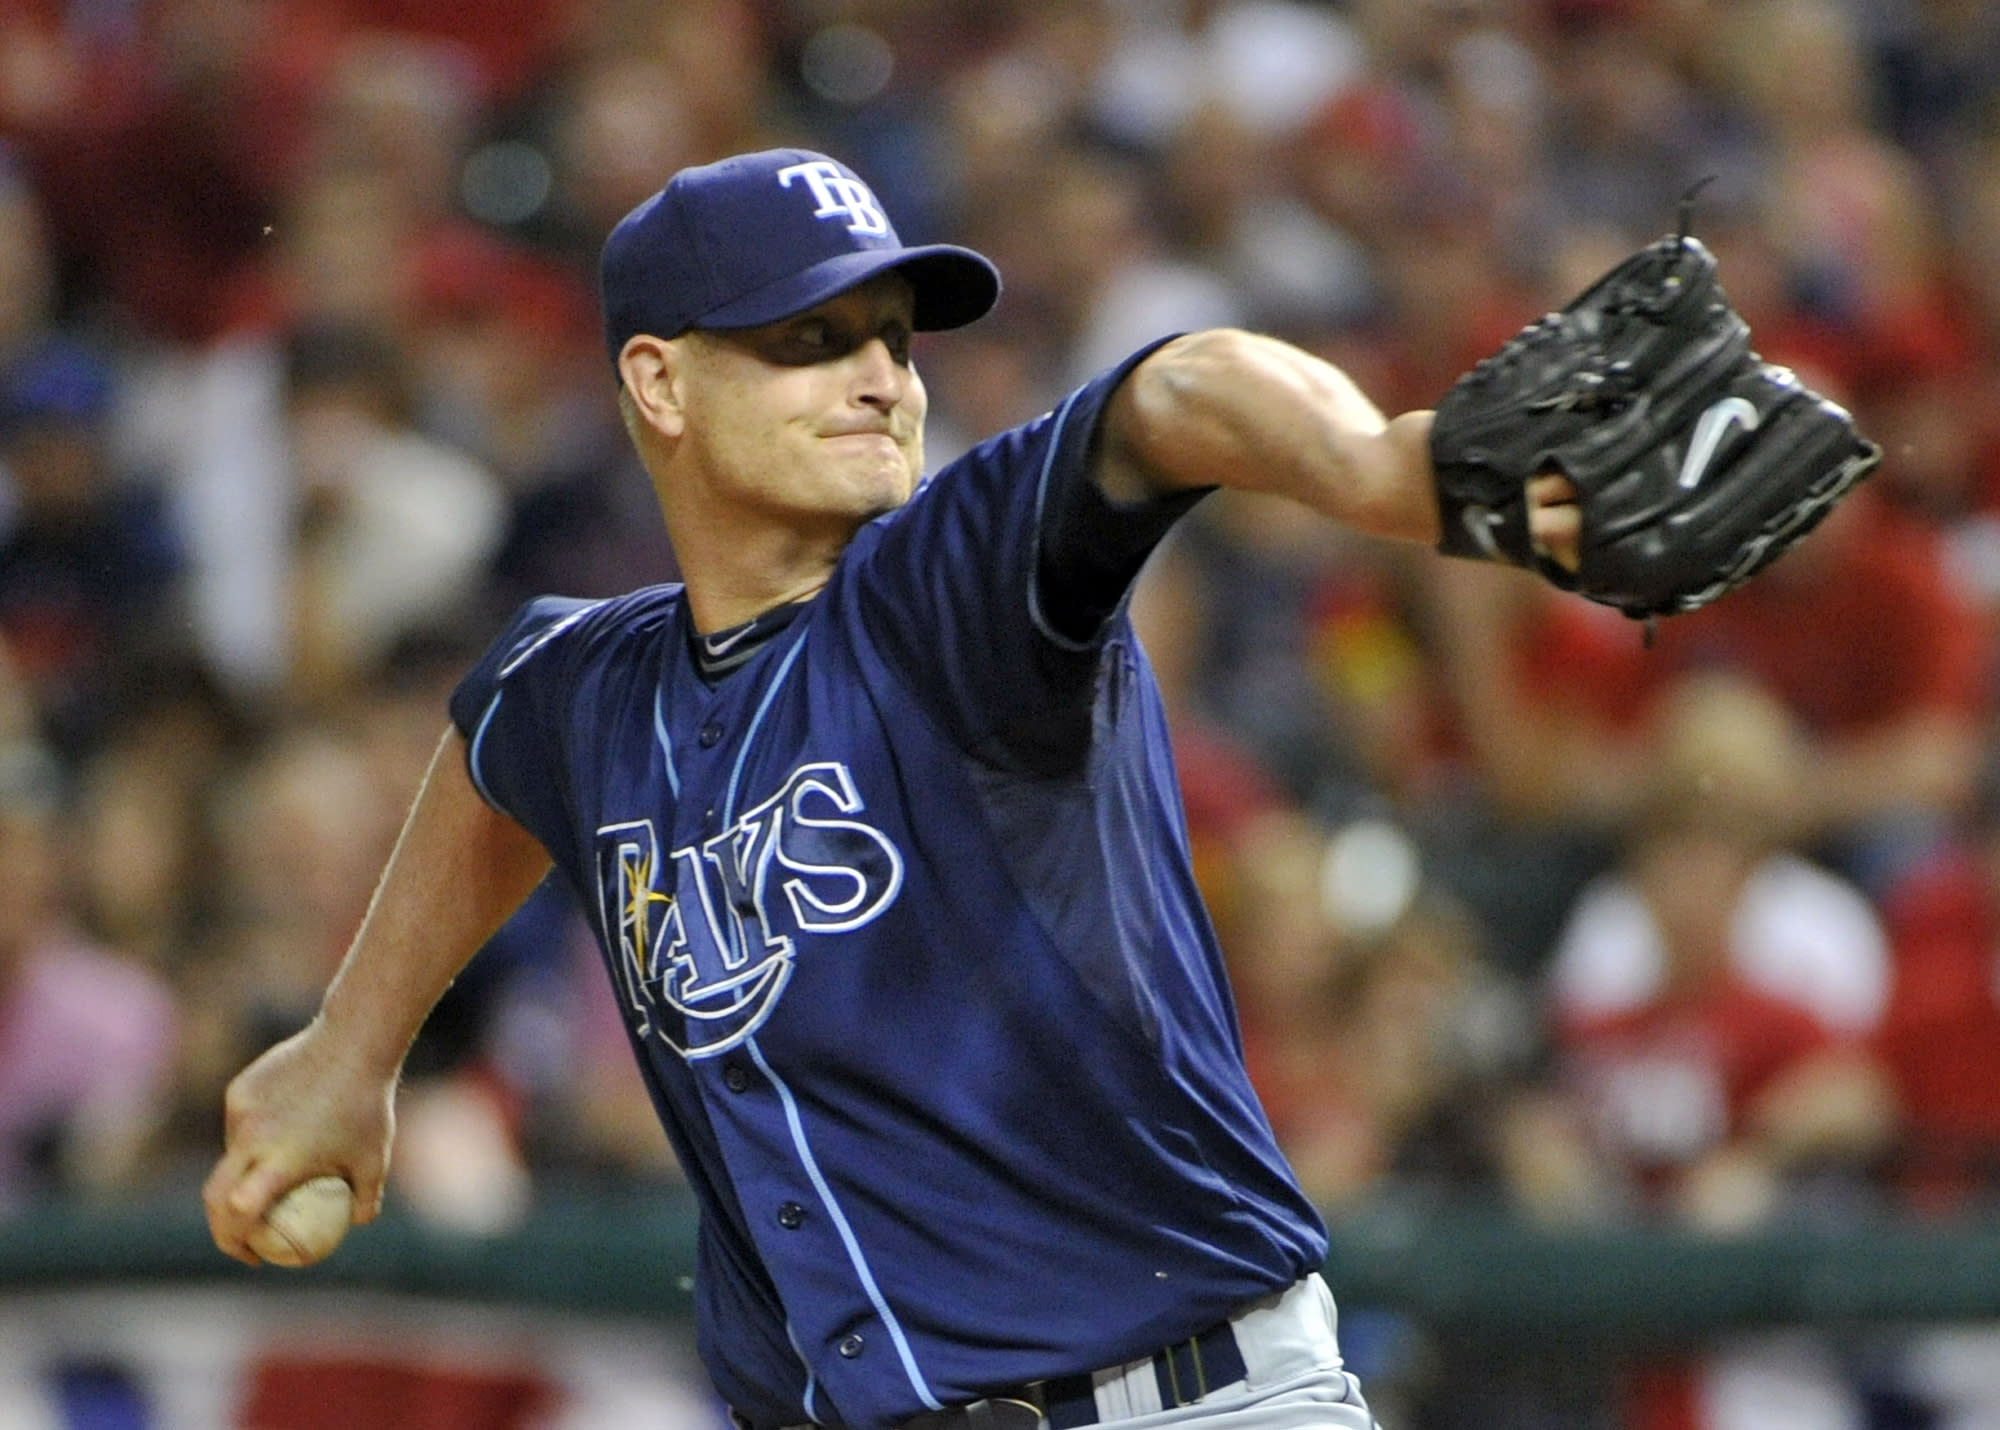 Tampa Bay Rays starting pitcher Alex Cobb winds up against the Cleveland Indians in the first inning of the AL wild-card baseball playoff game Wednesday, Oct. 2, 2013, in Cleveland. (AP Photo/Phil Long)